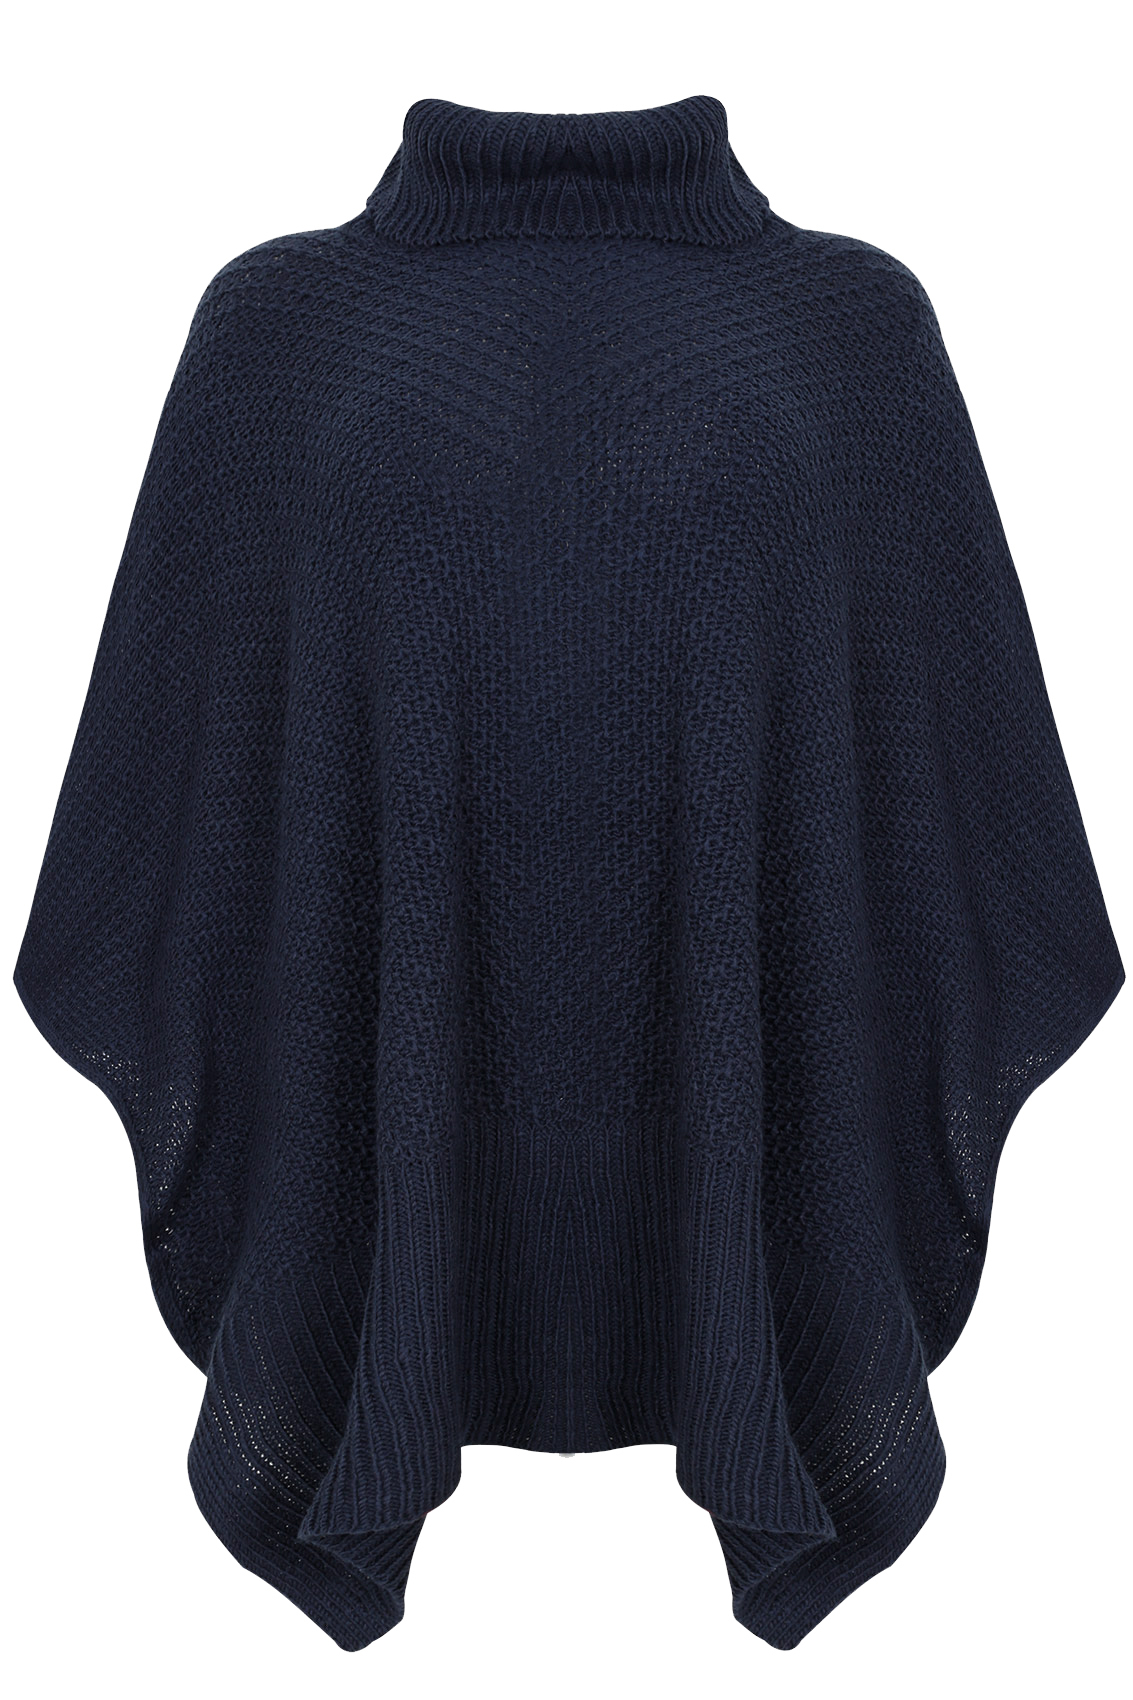 Cowl Neck Poncho Knitting Pattern : Navy Knitted Cowl Neck Poncho